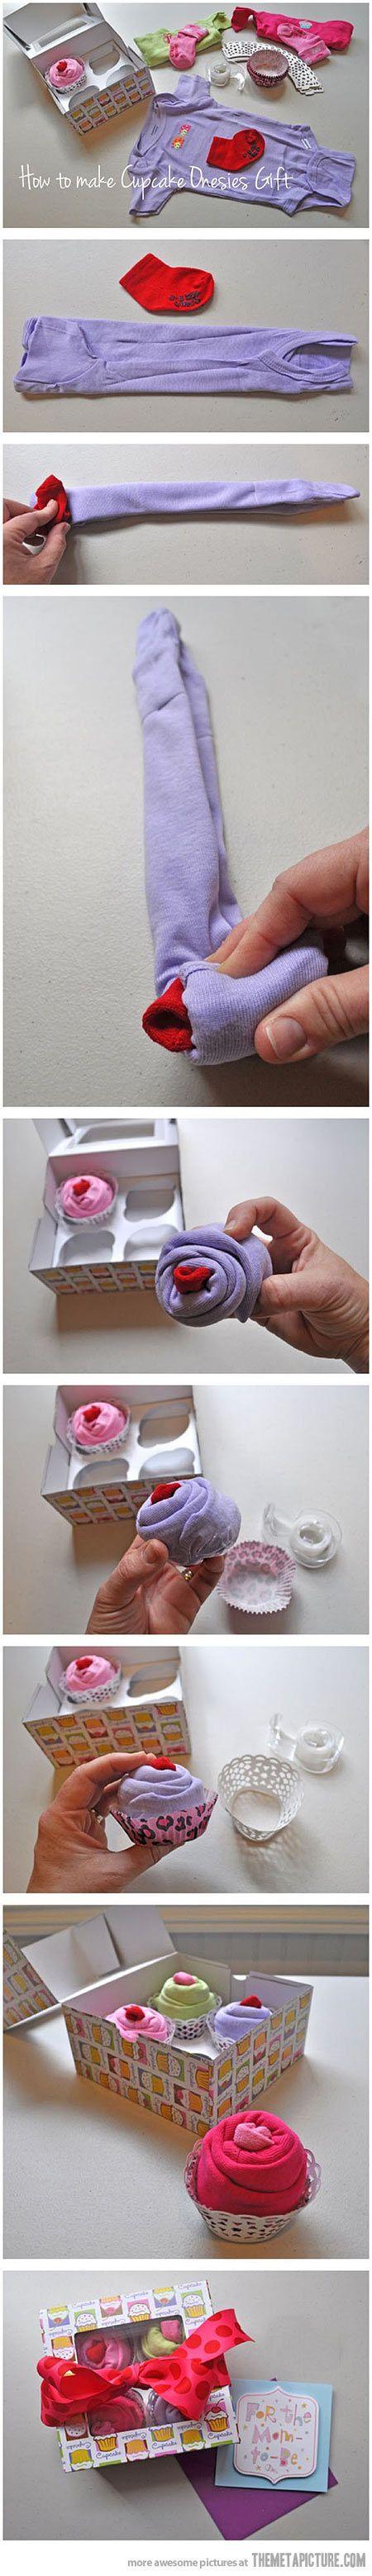 The best way to gift baby clothes.